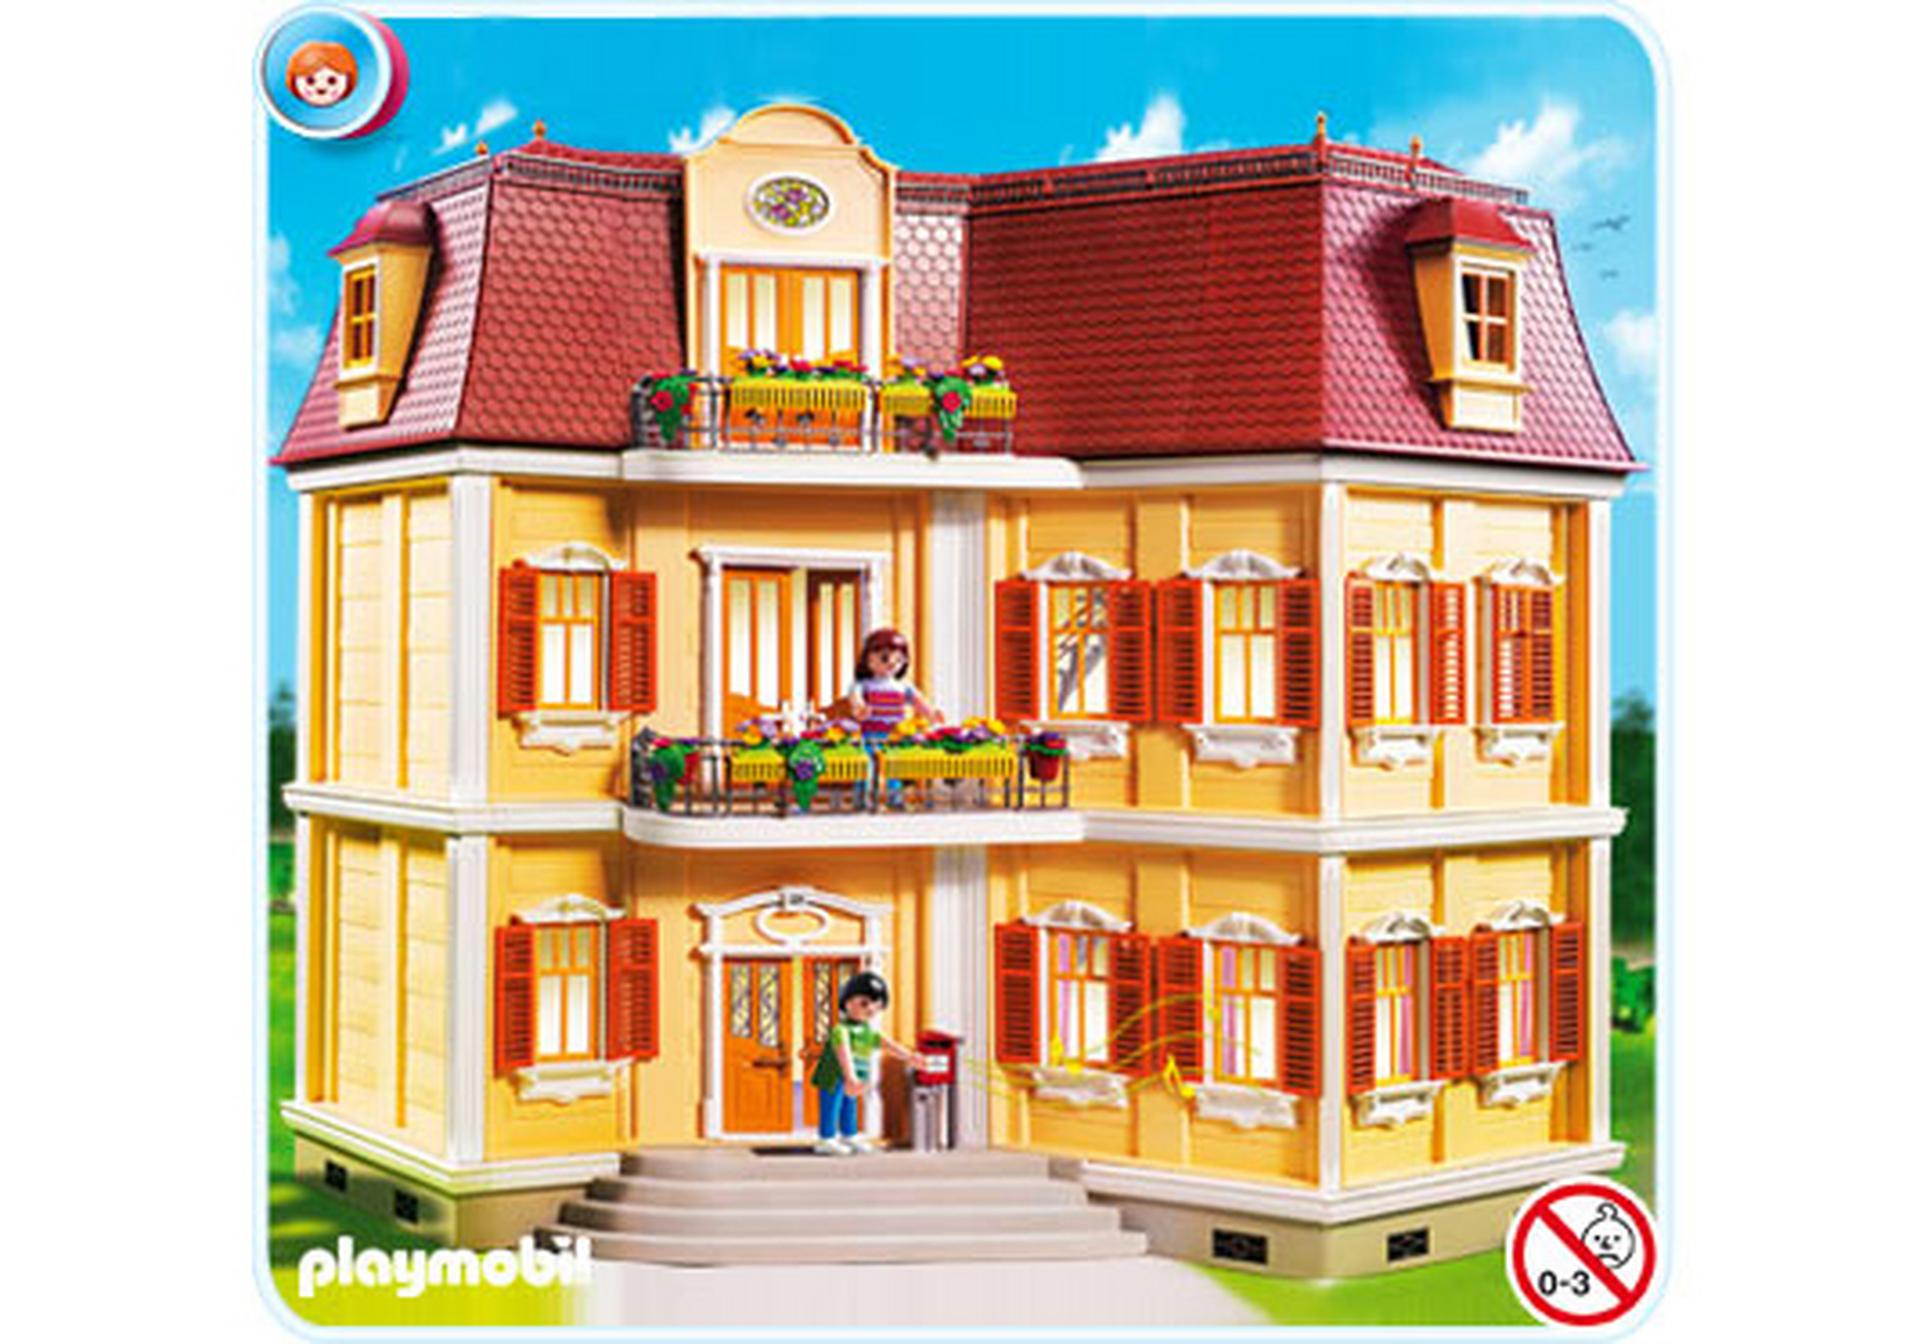 Grande mansion 5302 a playmobil for Playmobil modernes haus 9266